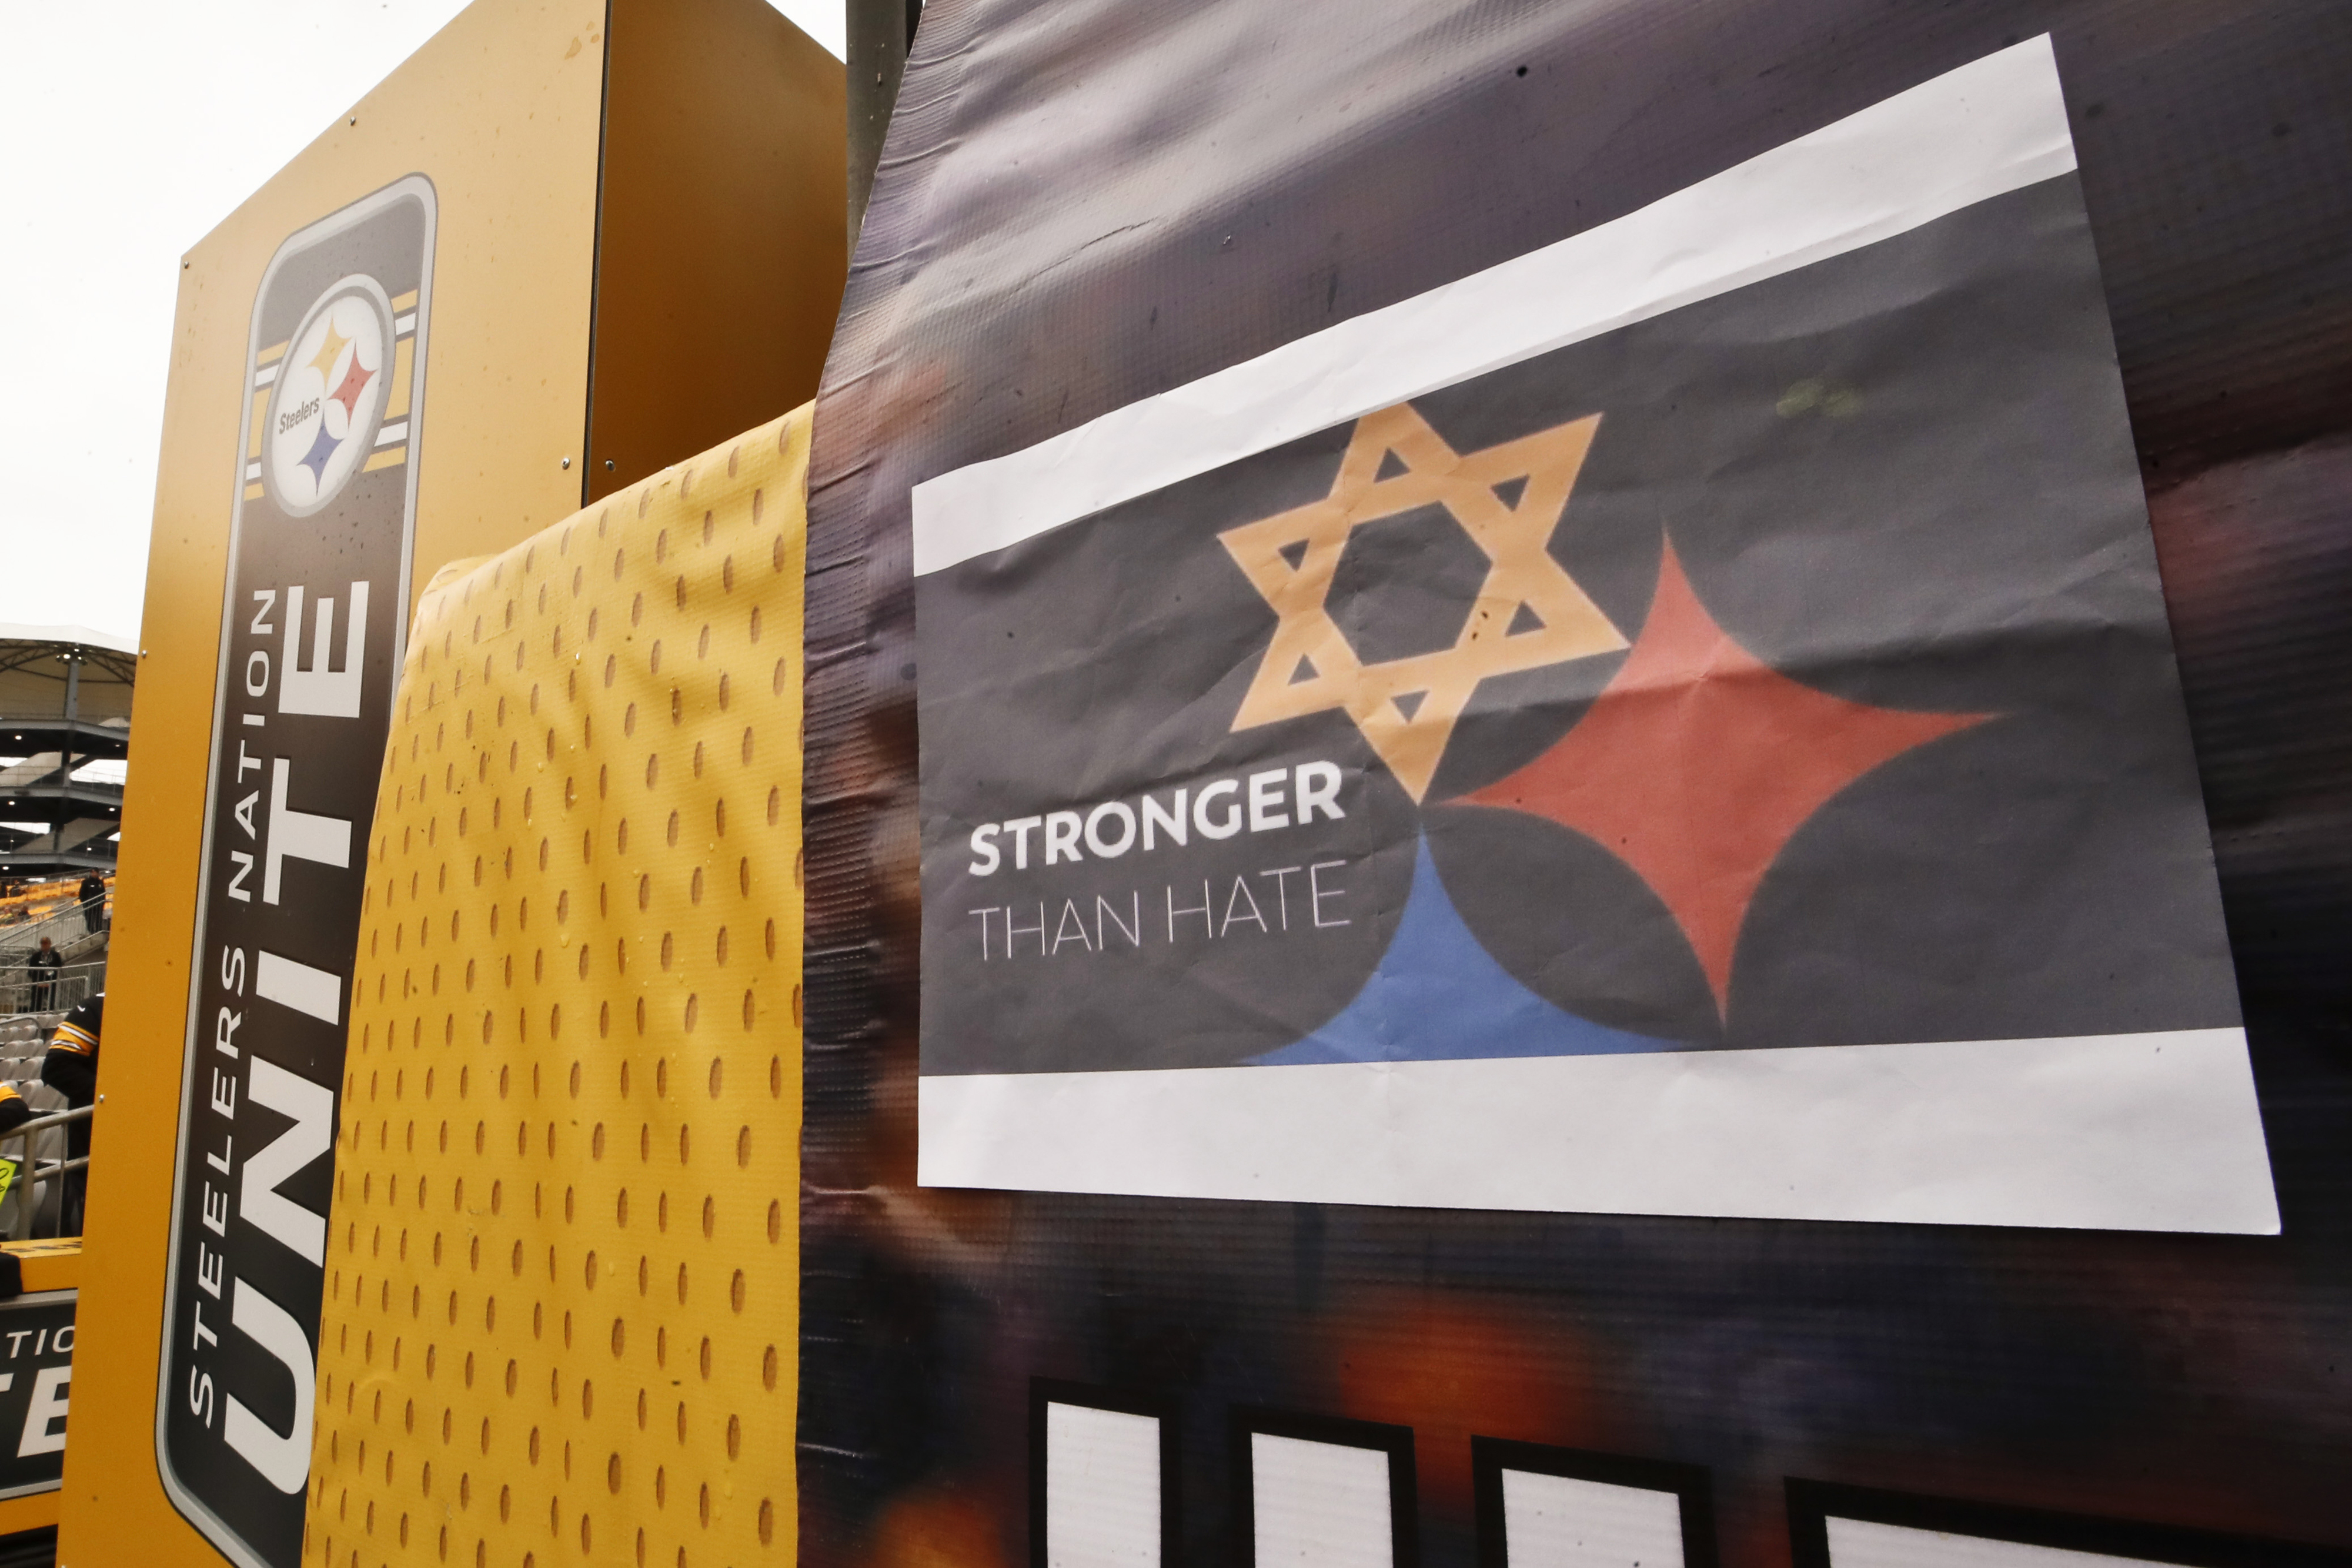 c8e2c0d30 Design based on Steelers logo honors synagogue shooting victims | Las Vegas  Review-Journal